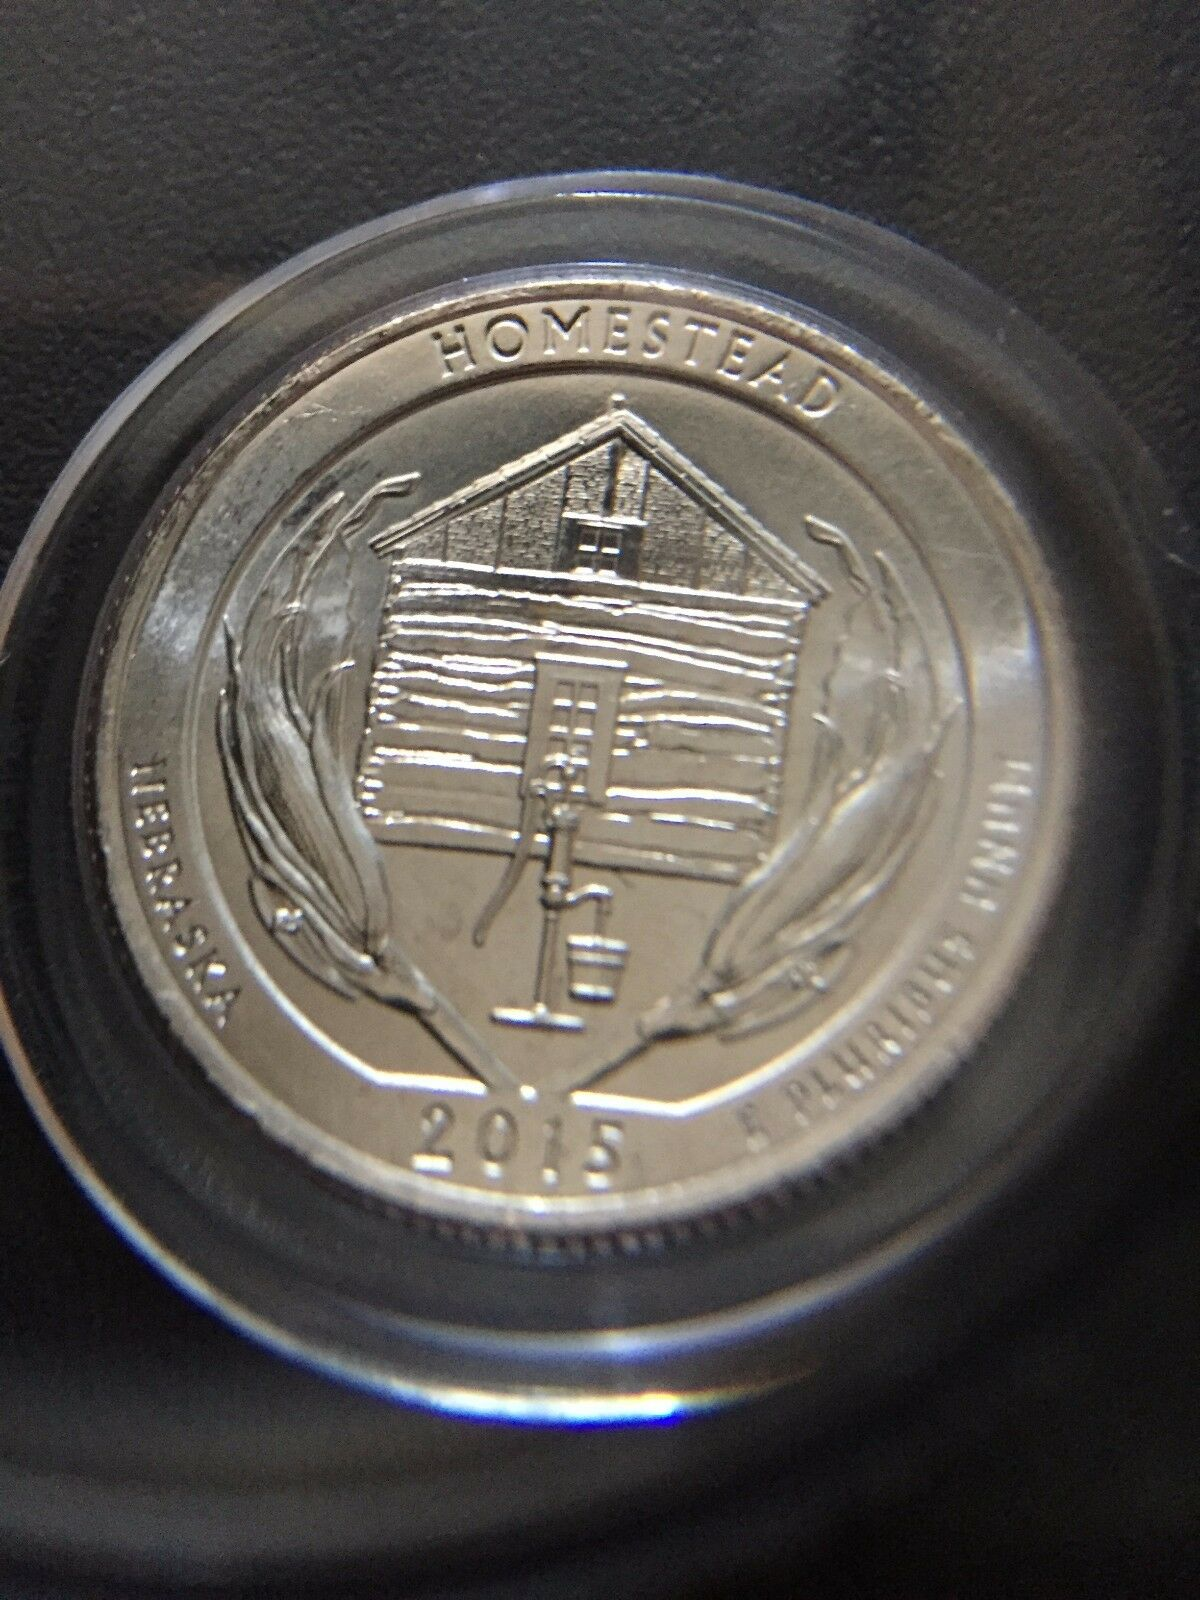 2015 P Homestead Nebraska Quarter Coin Error WDDR-004 Best of Variety in Capsule